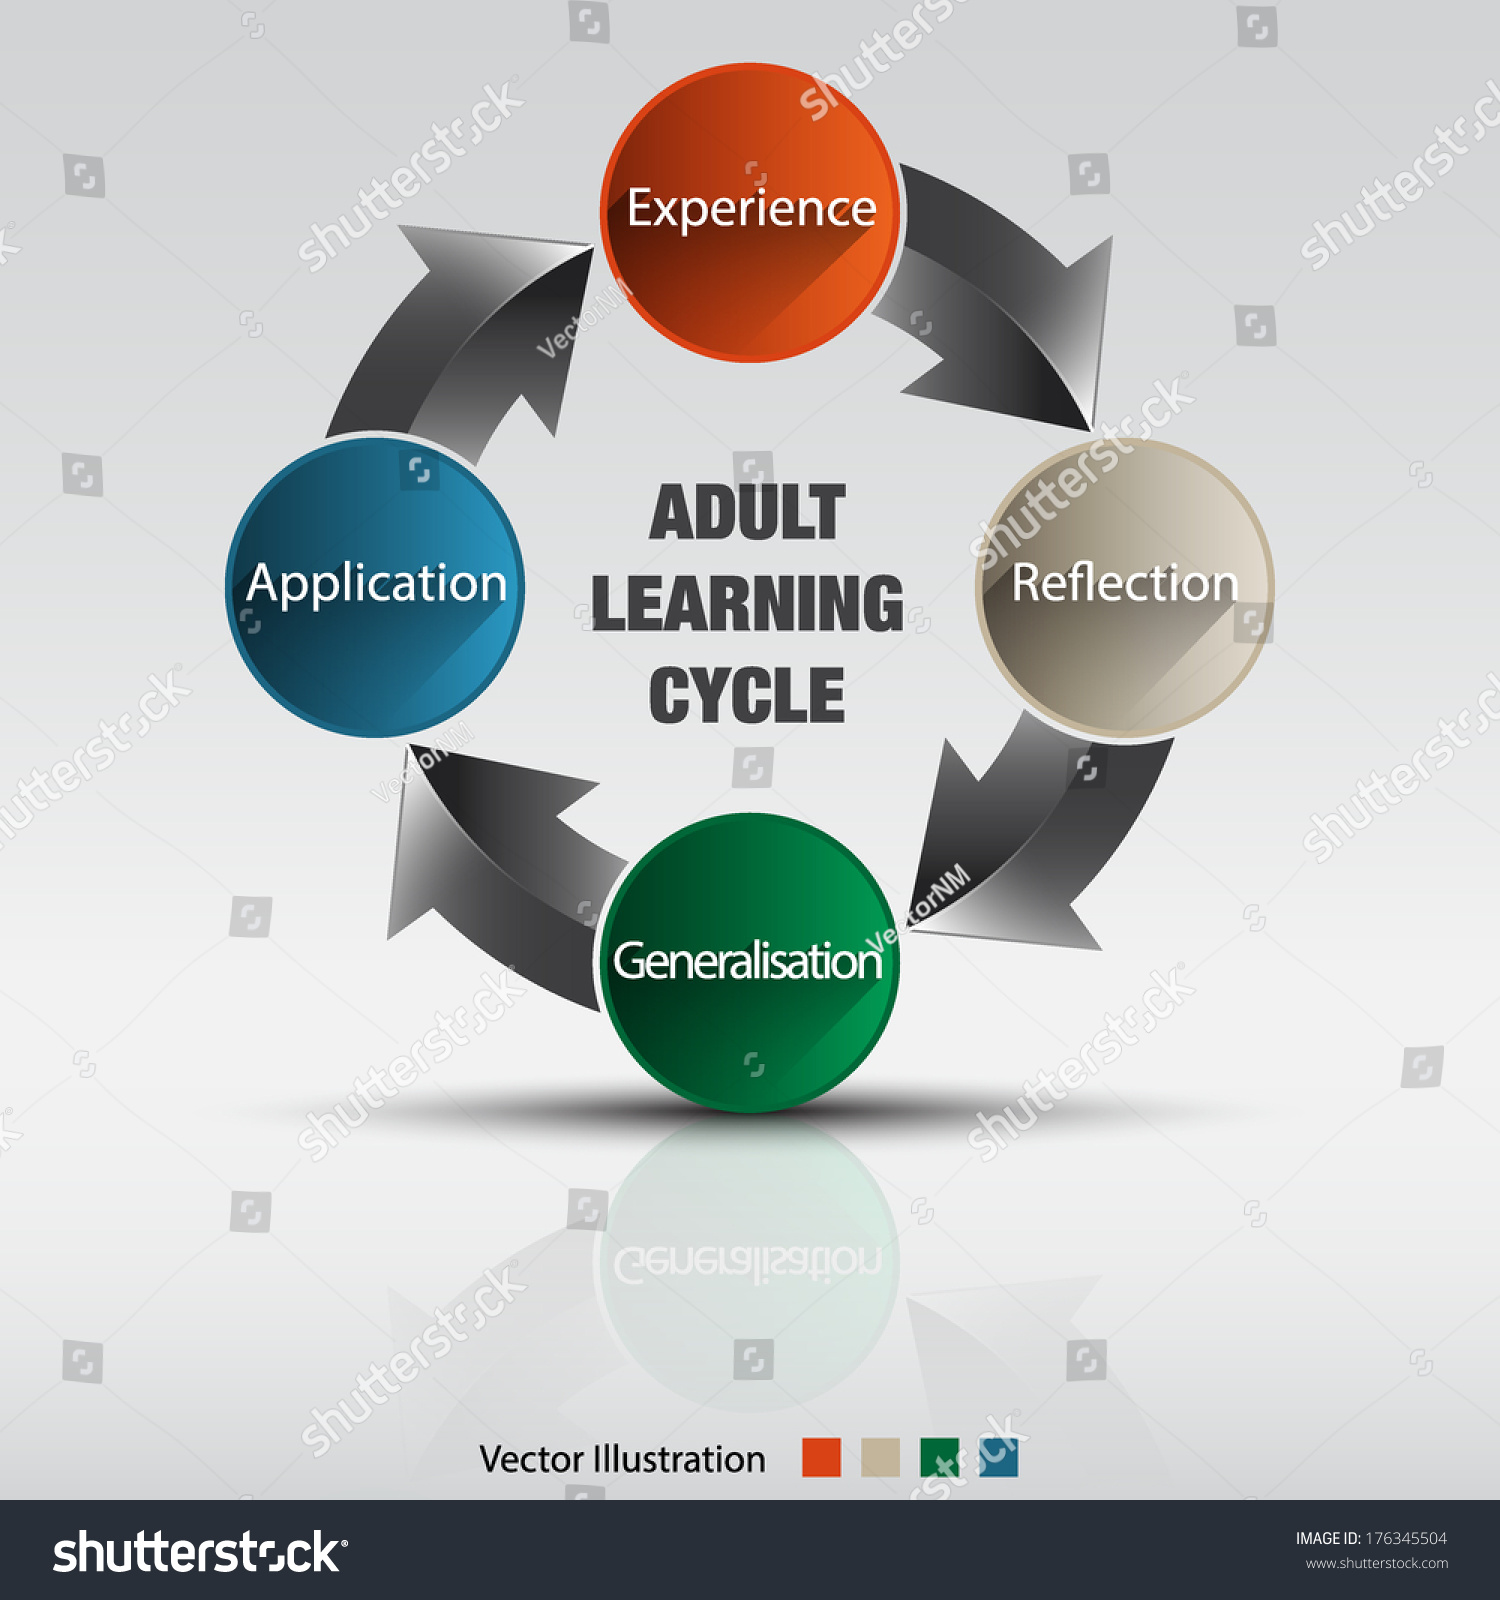 Adult Learning Cycle Vector Illustration Stock Vector (Royalty Free.